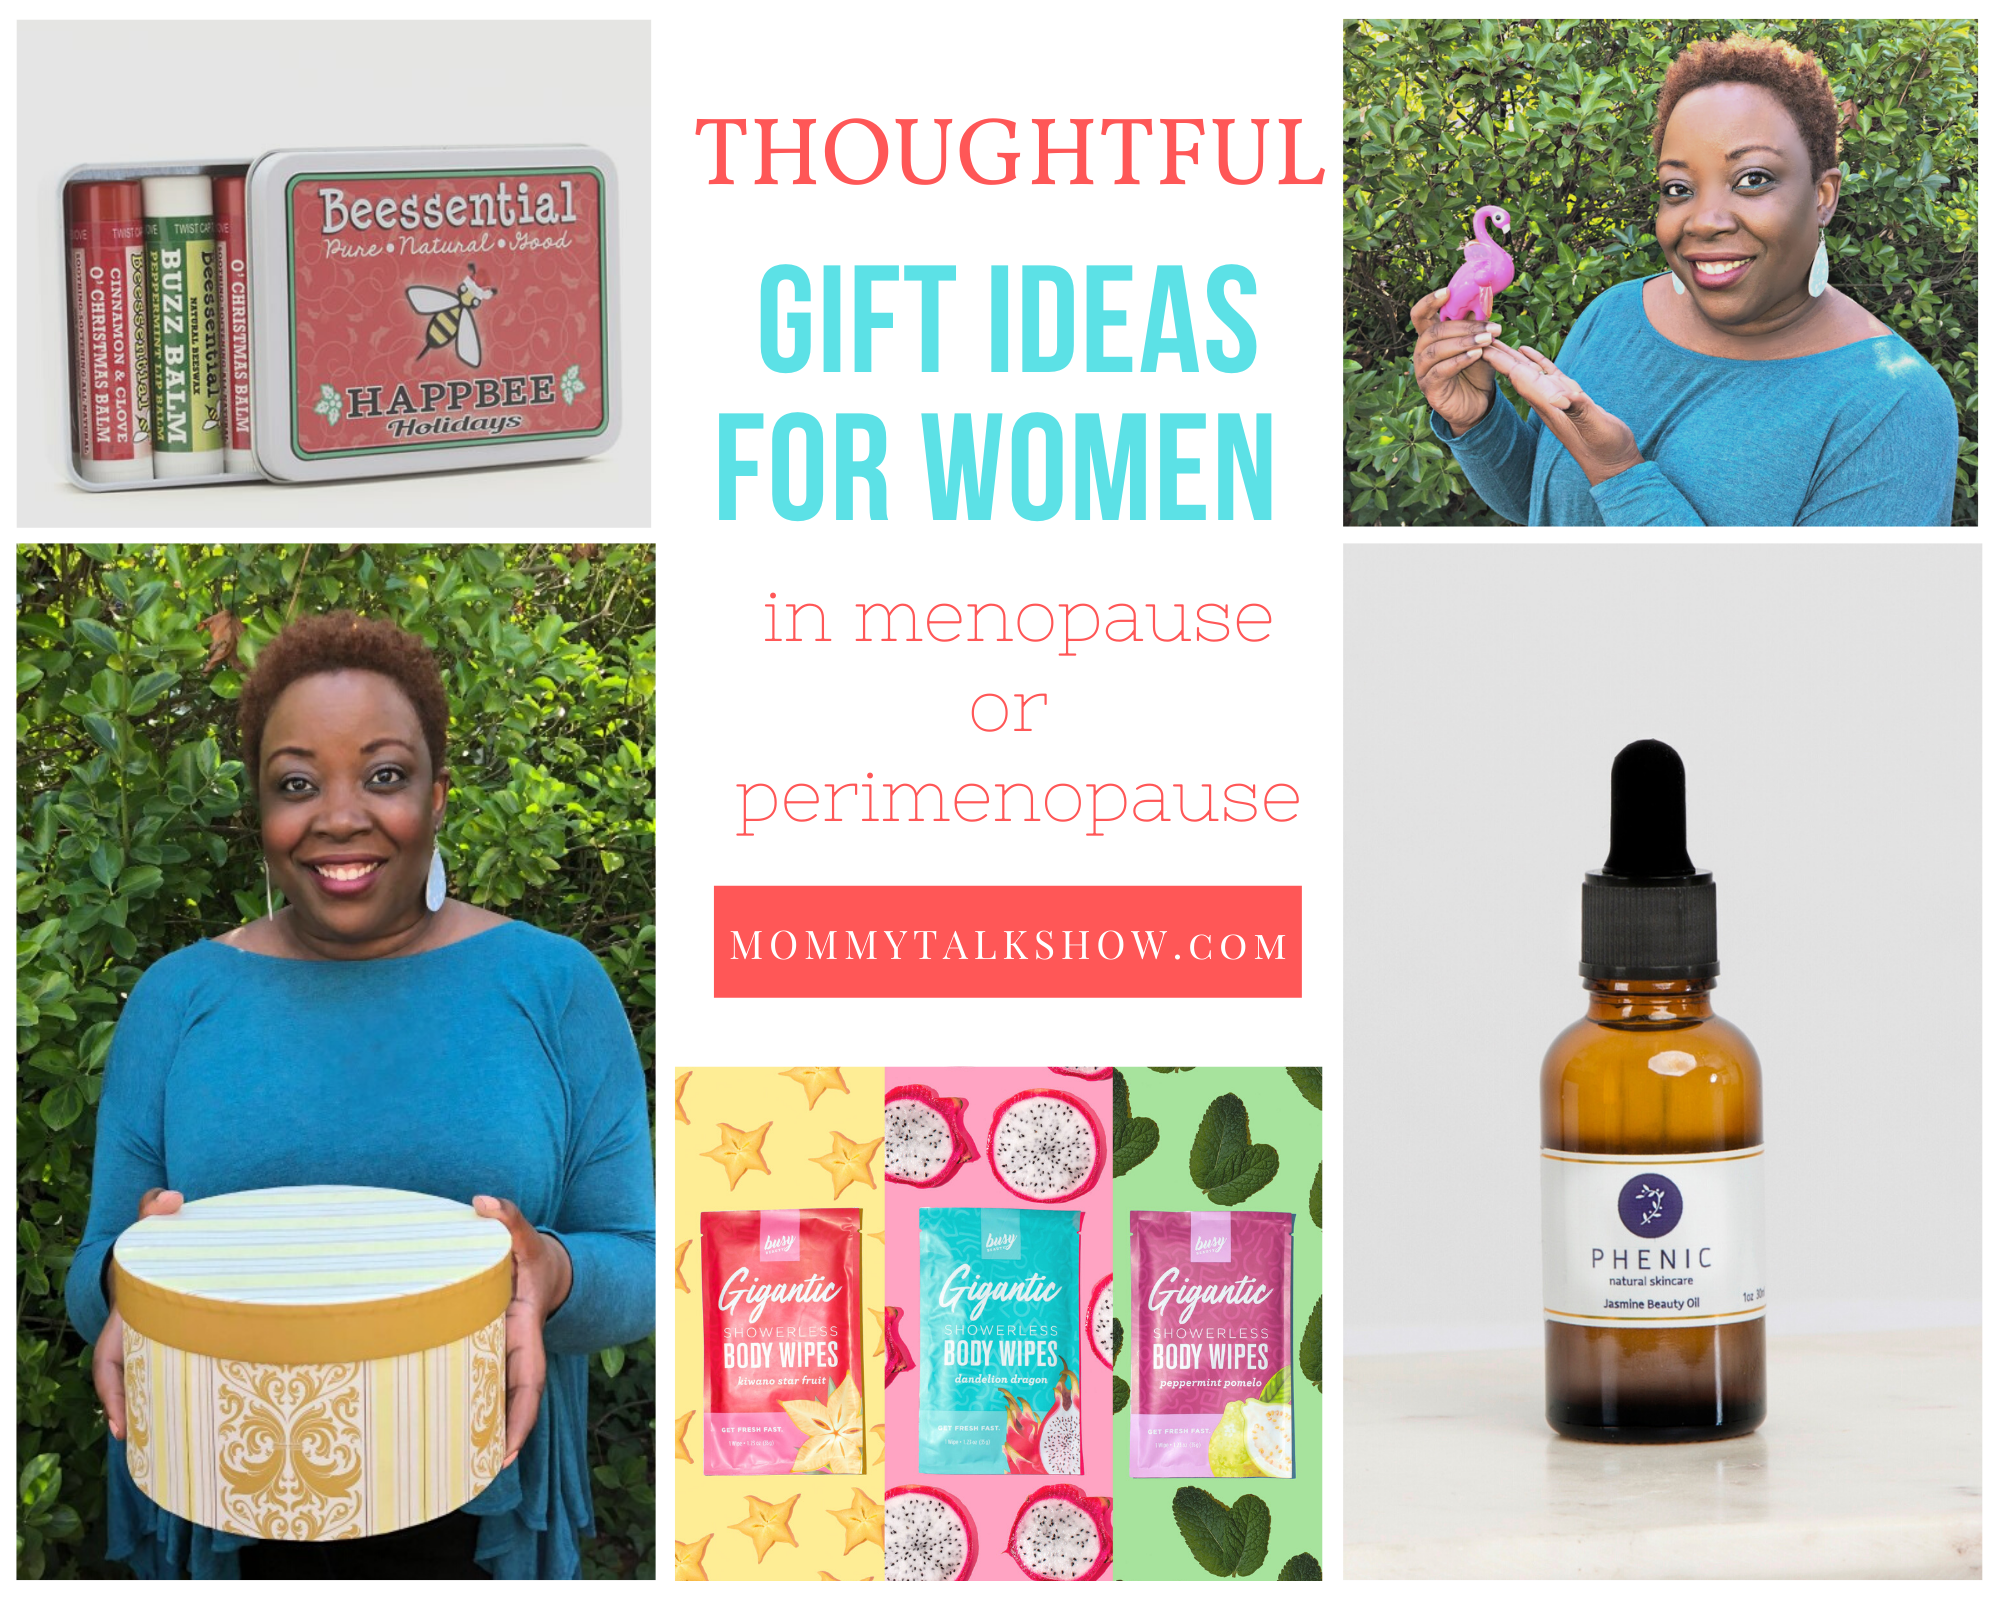 [VIDEO] Thoughtful Perimenopause & Menopause Gift Ideas